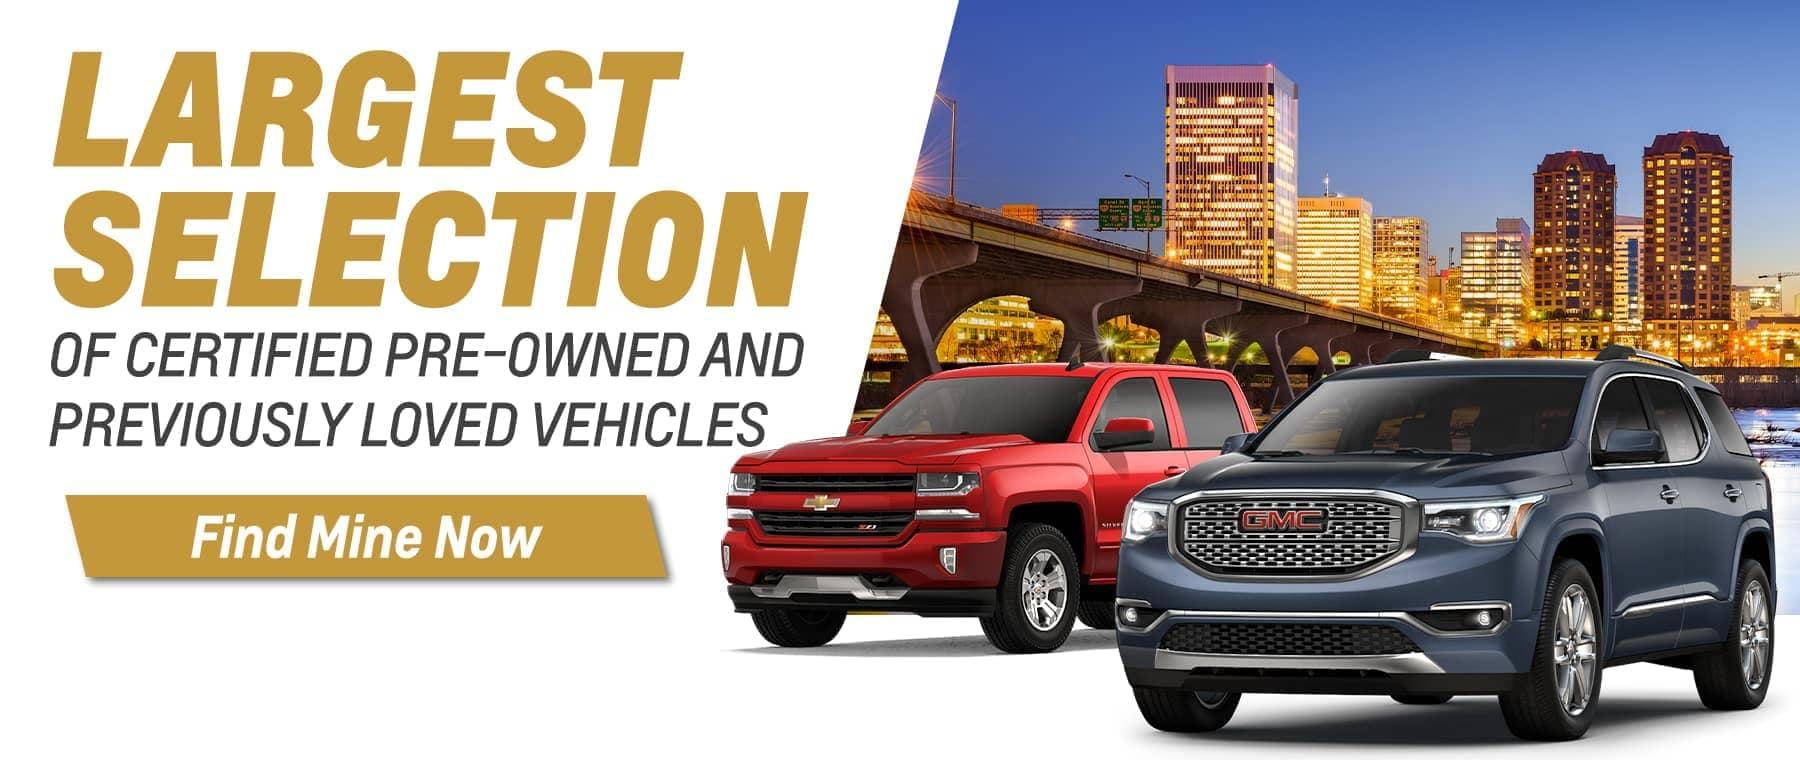 Largest Selection of Pre-Owned